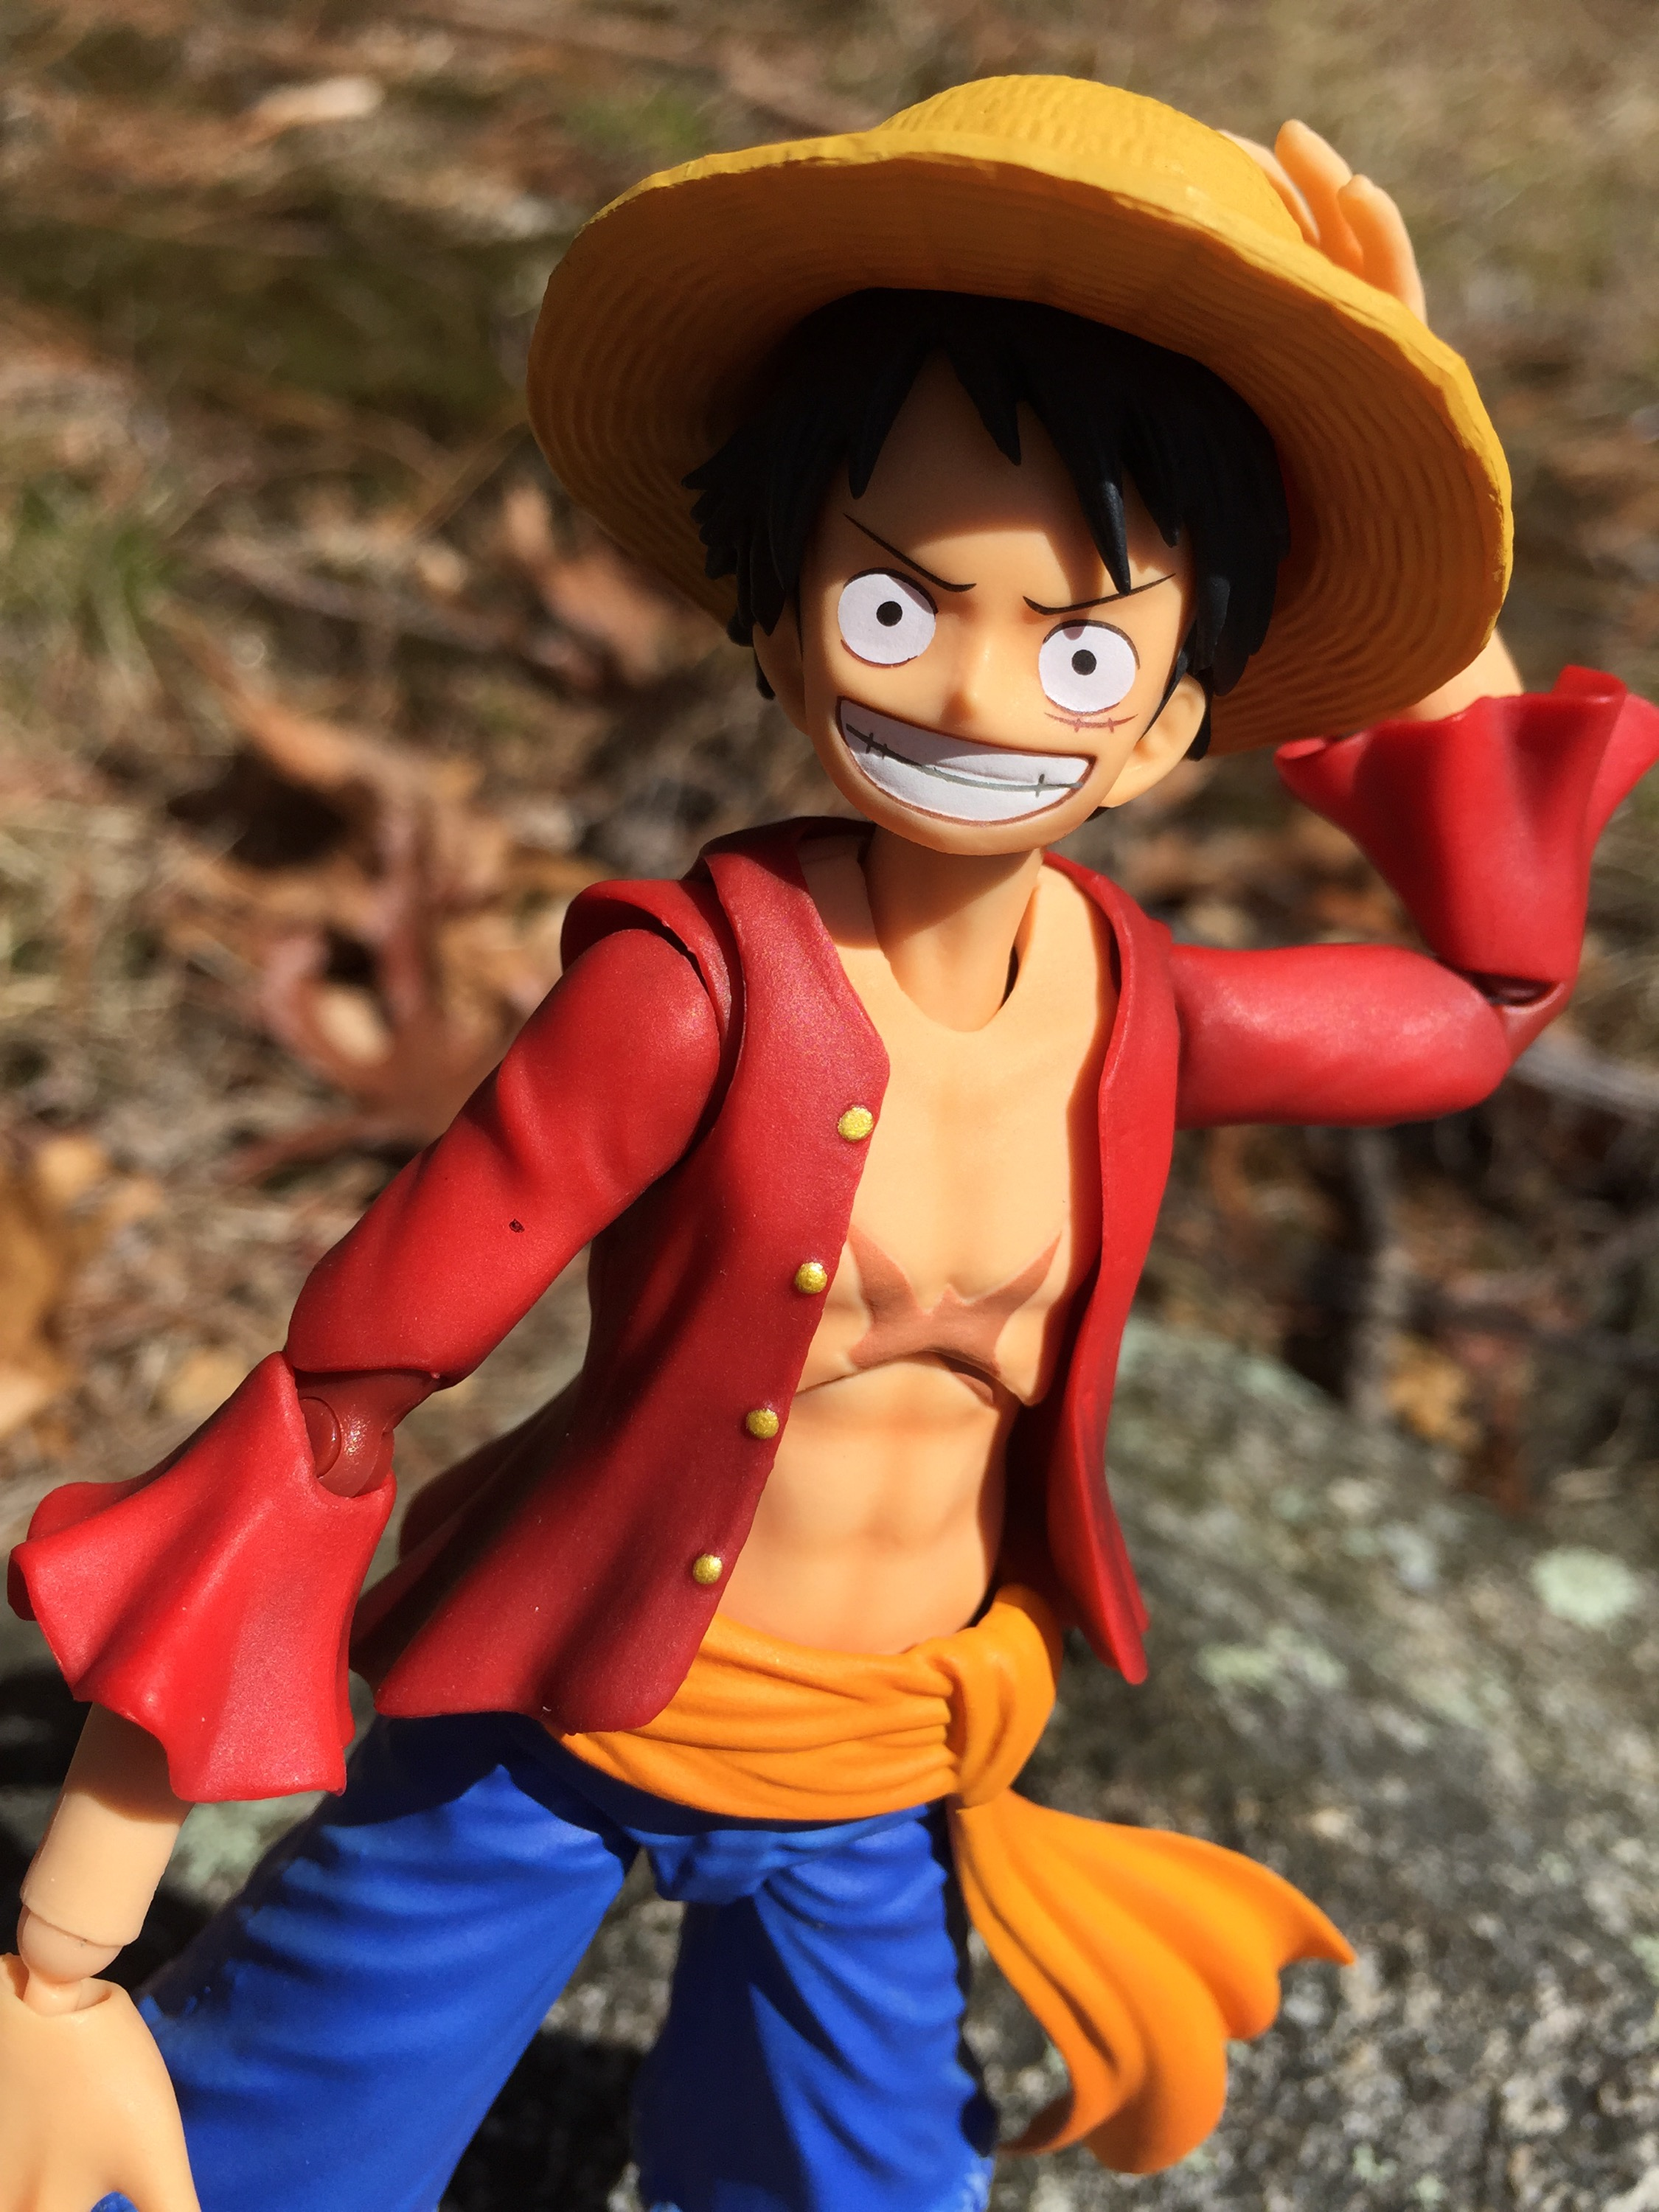 One Piece VAH Monkey D. Luffy Figure Review